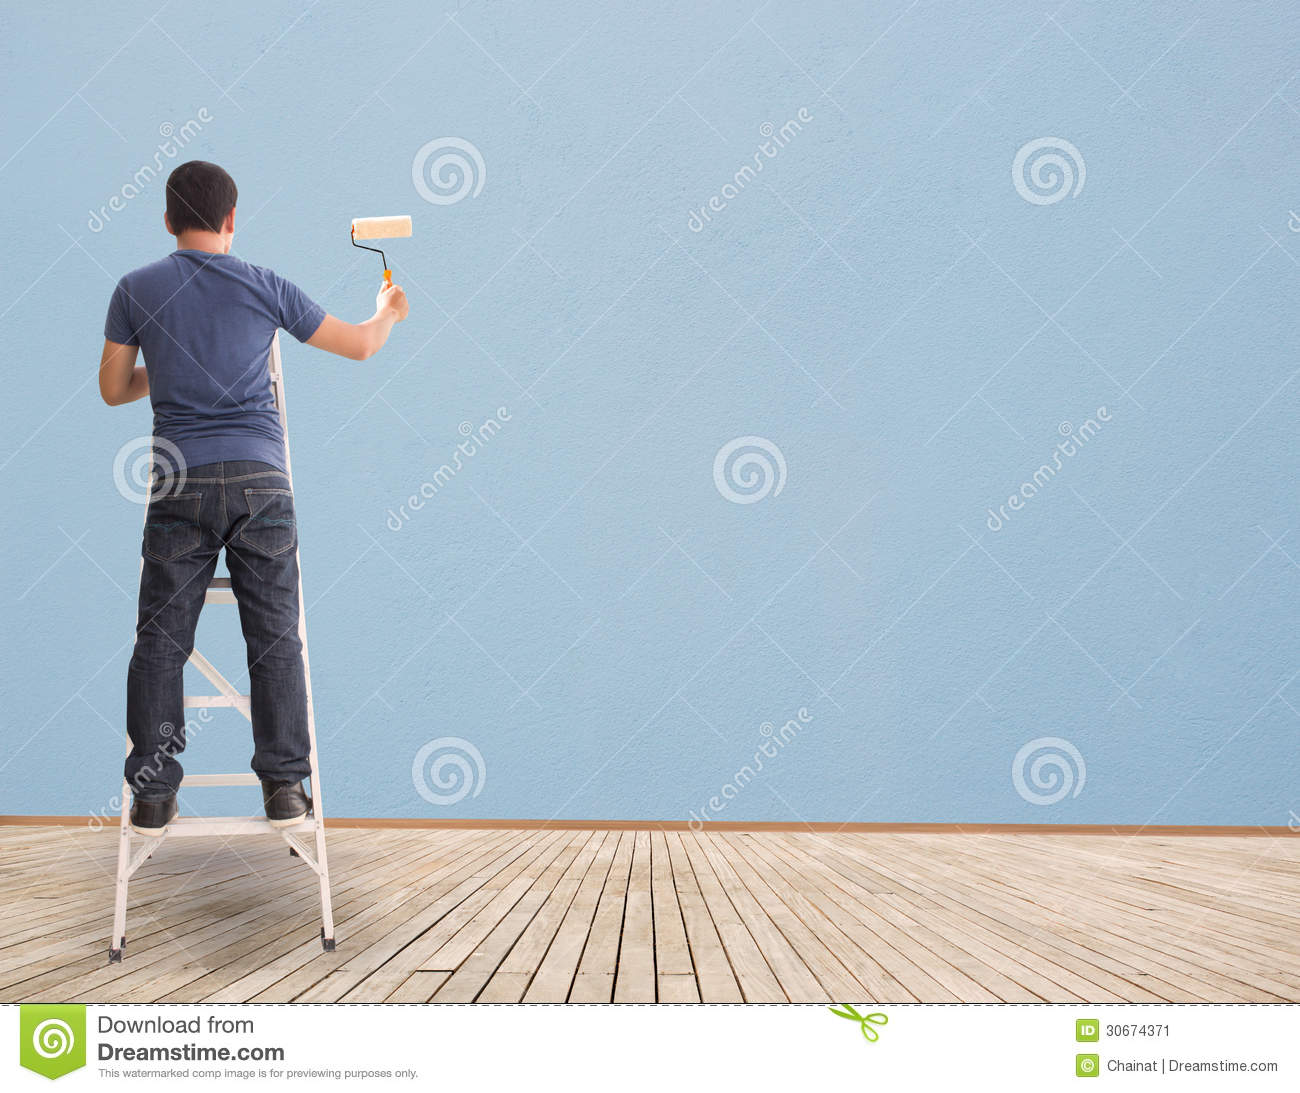 Person painting wall - Man Painting On Blue Blank Wall Stock Image